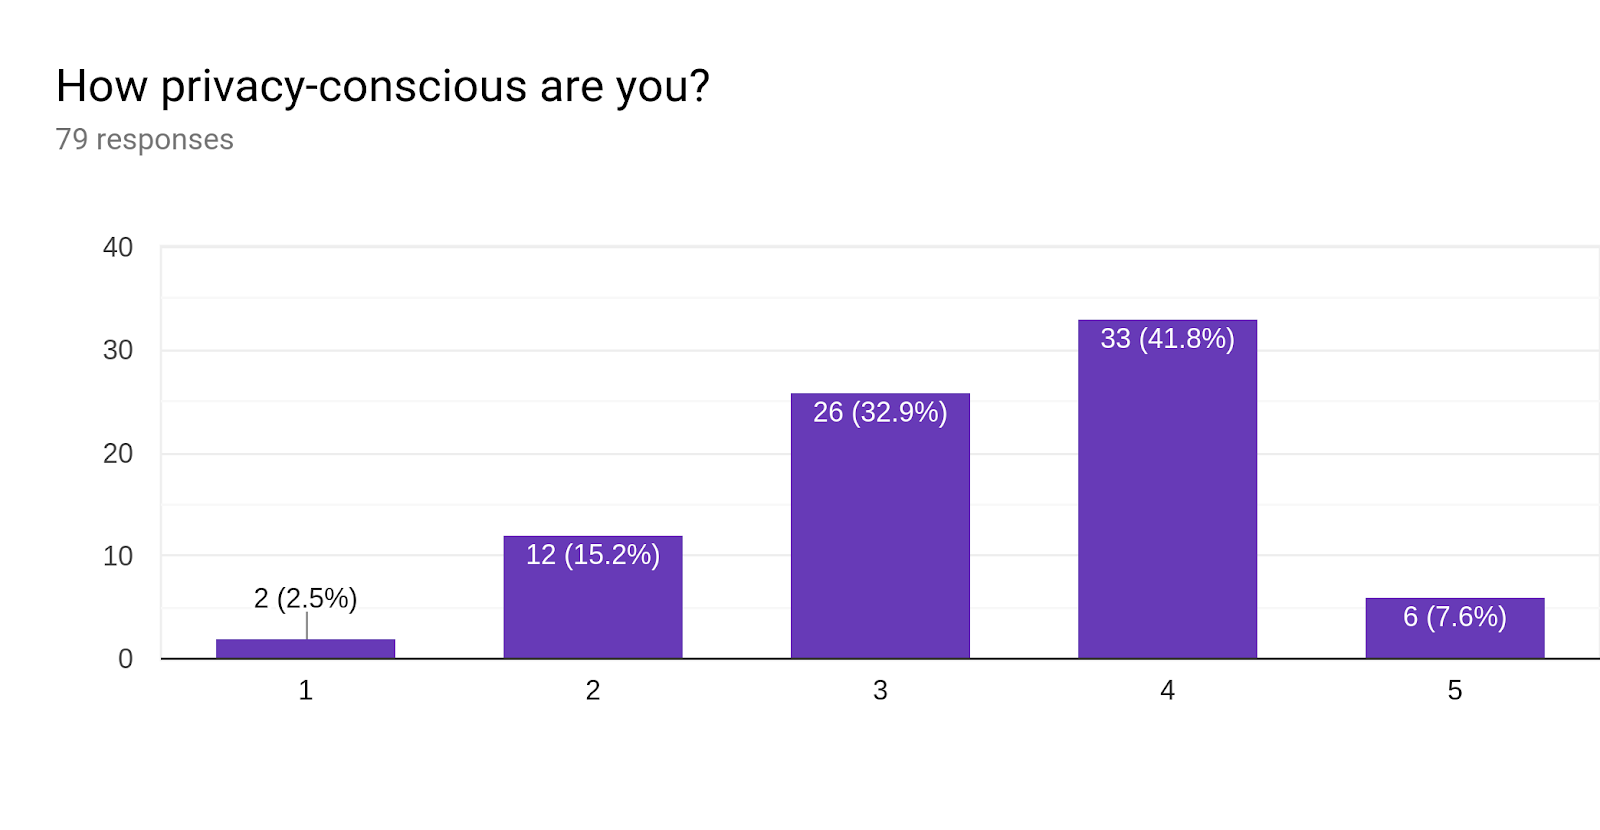 Forms response chart. Question title: How privacy-conscious are you?. Number of responses: 79 responses.